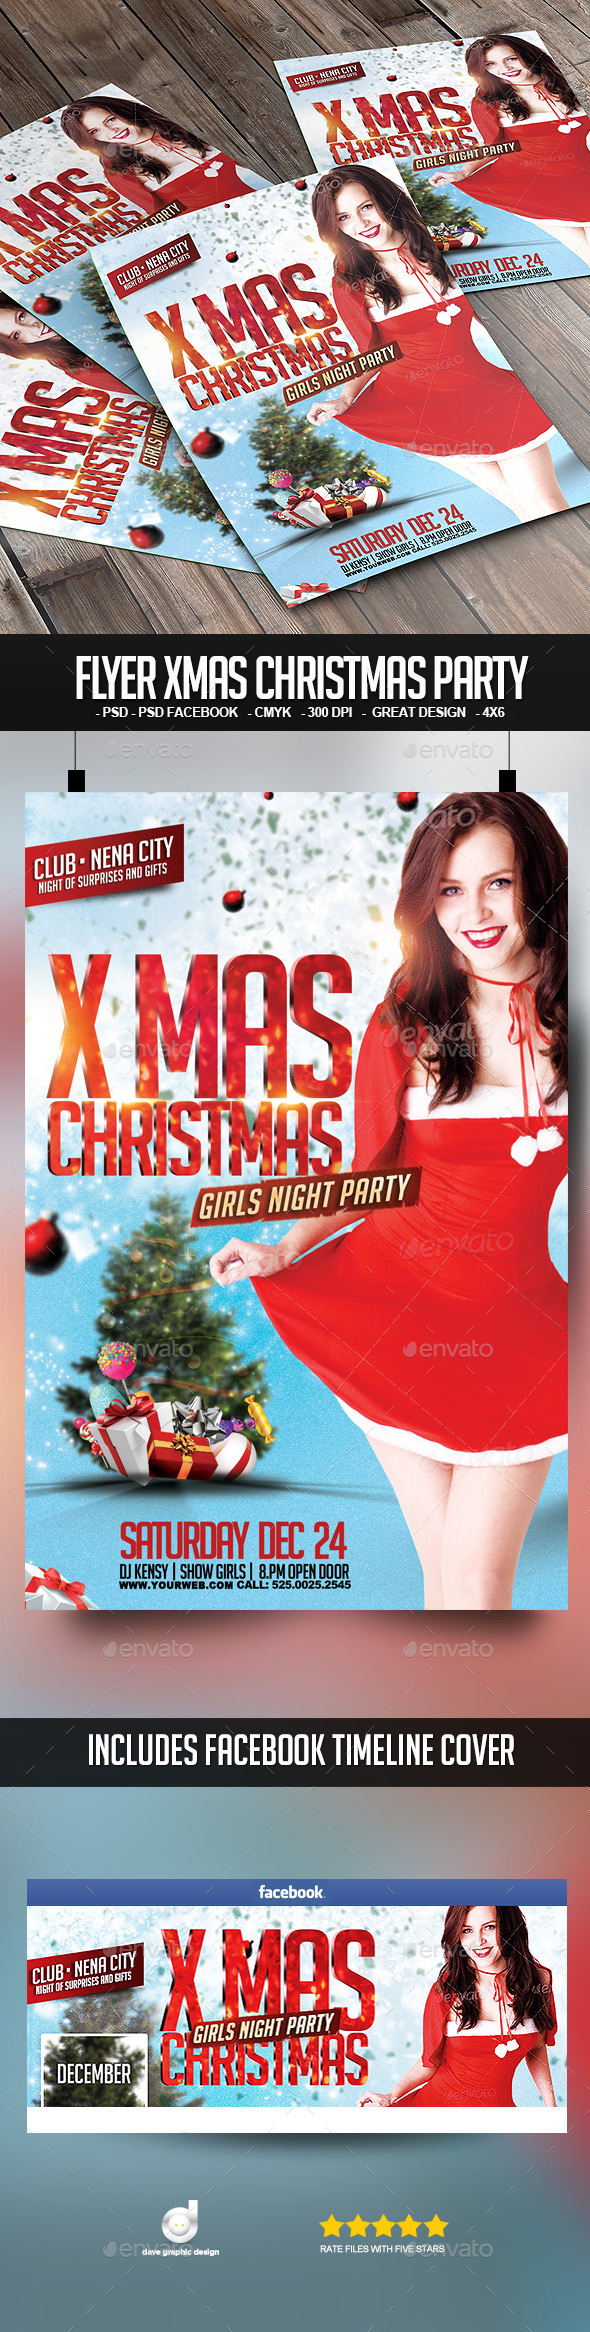 Flyer Xmas Christmas Party - Clubs & Parties Events